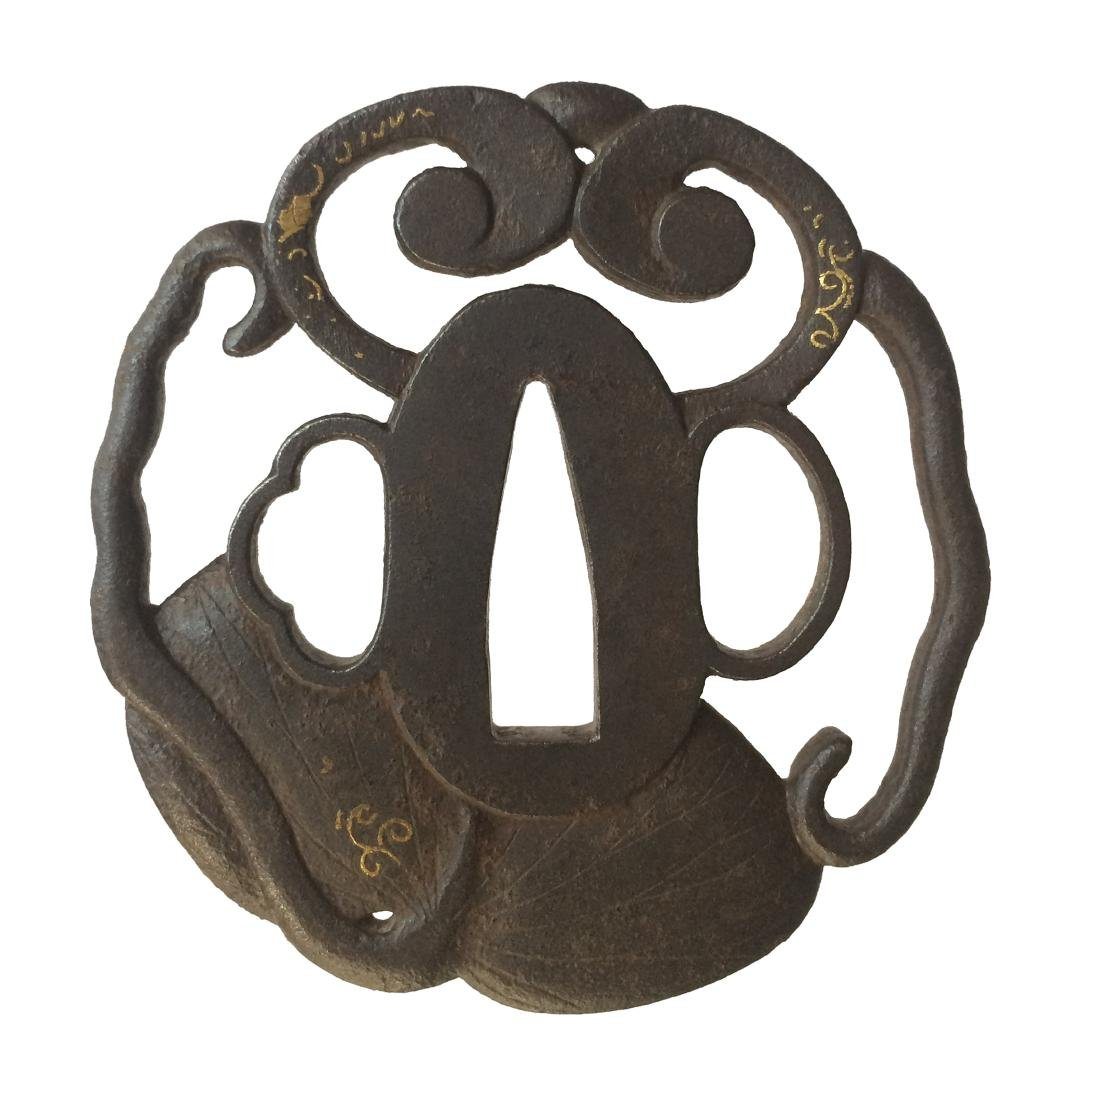 Iron tsuba with aoi leaves and tendrils motif, signed - 2